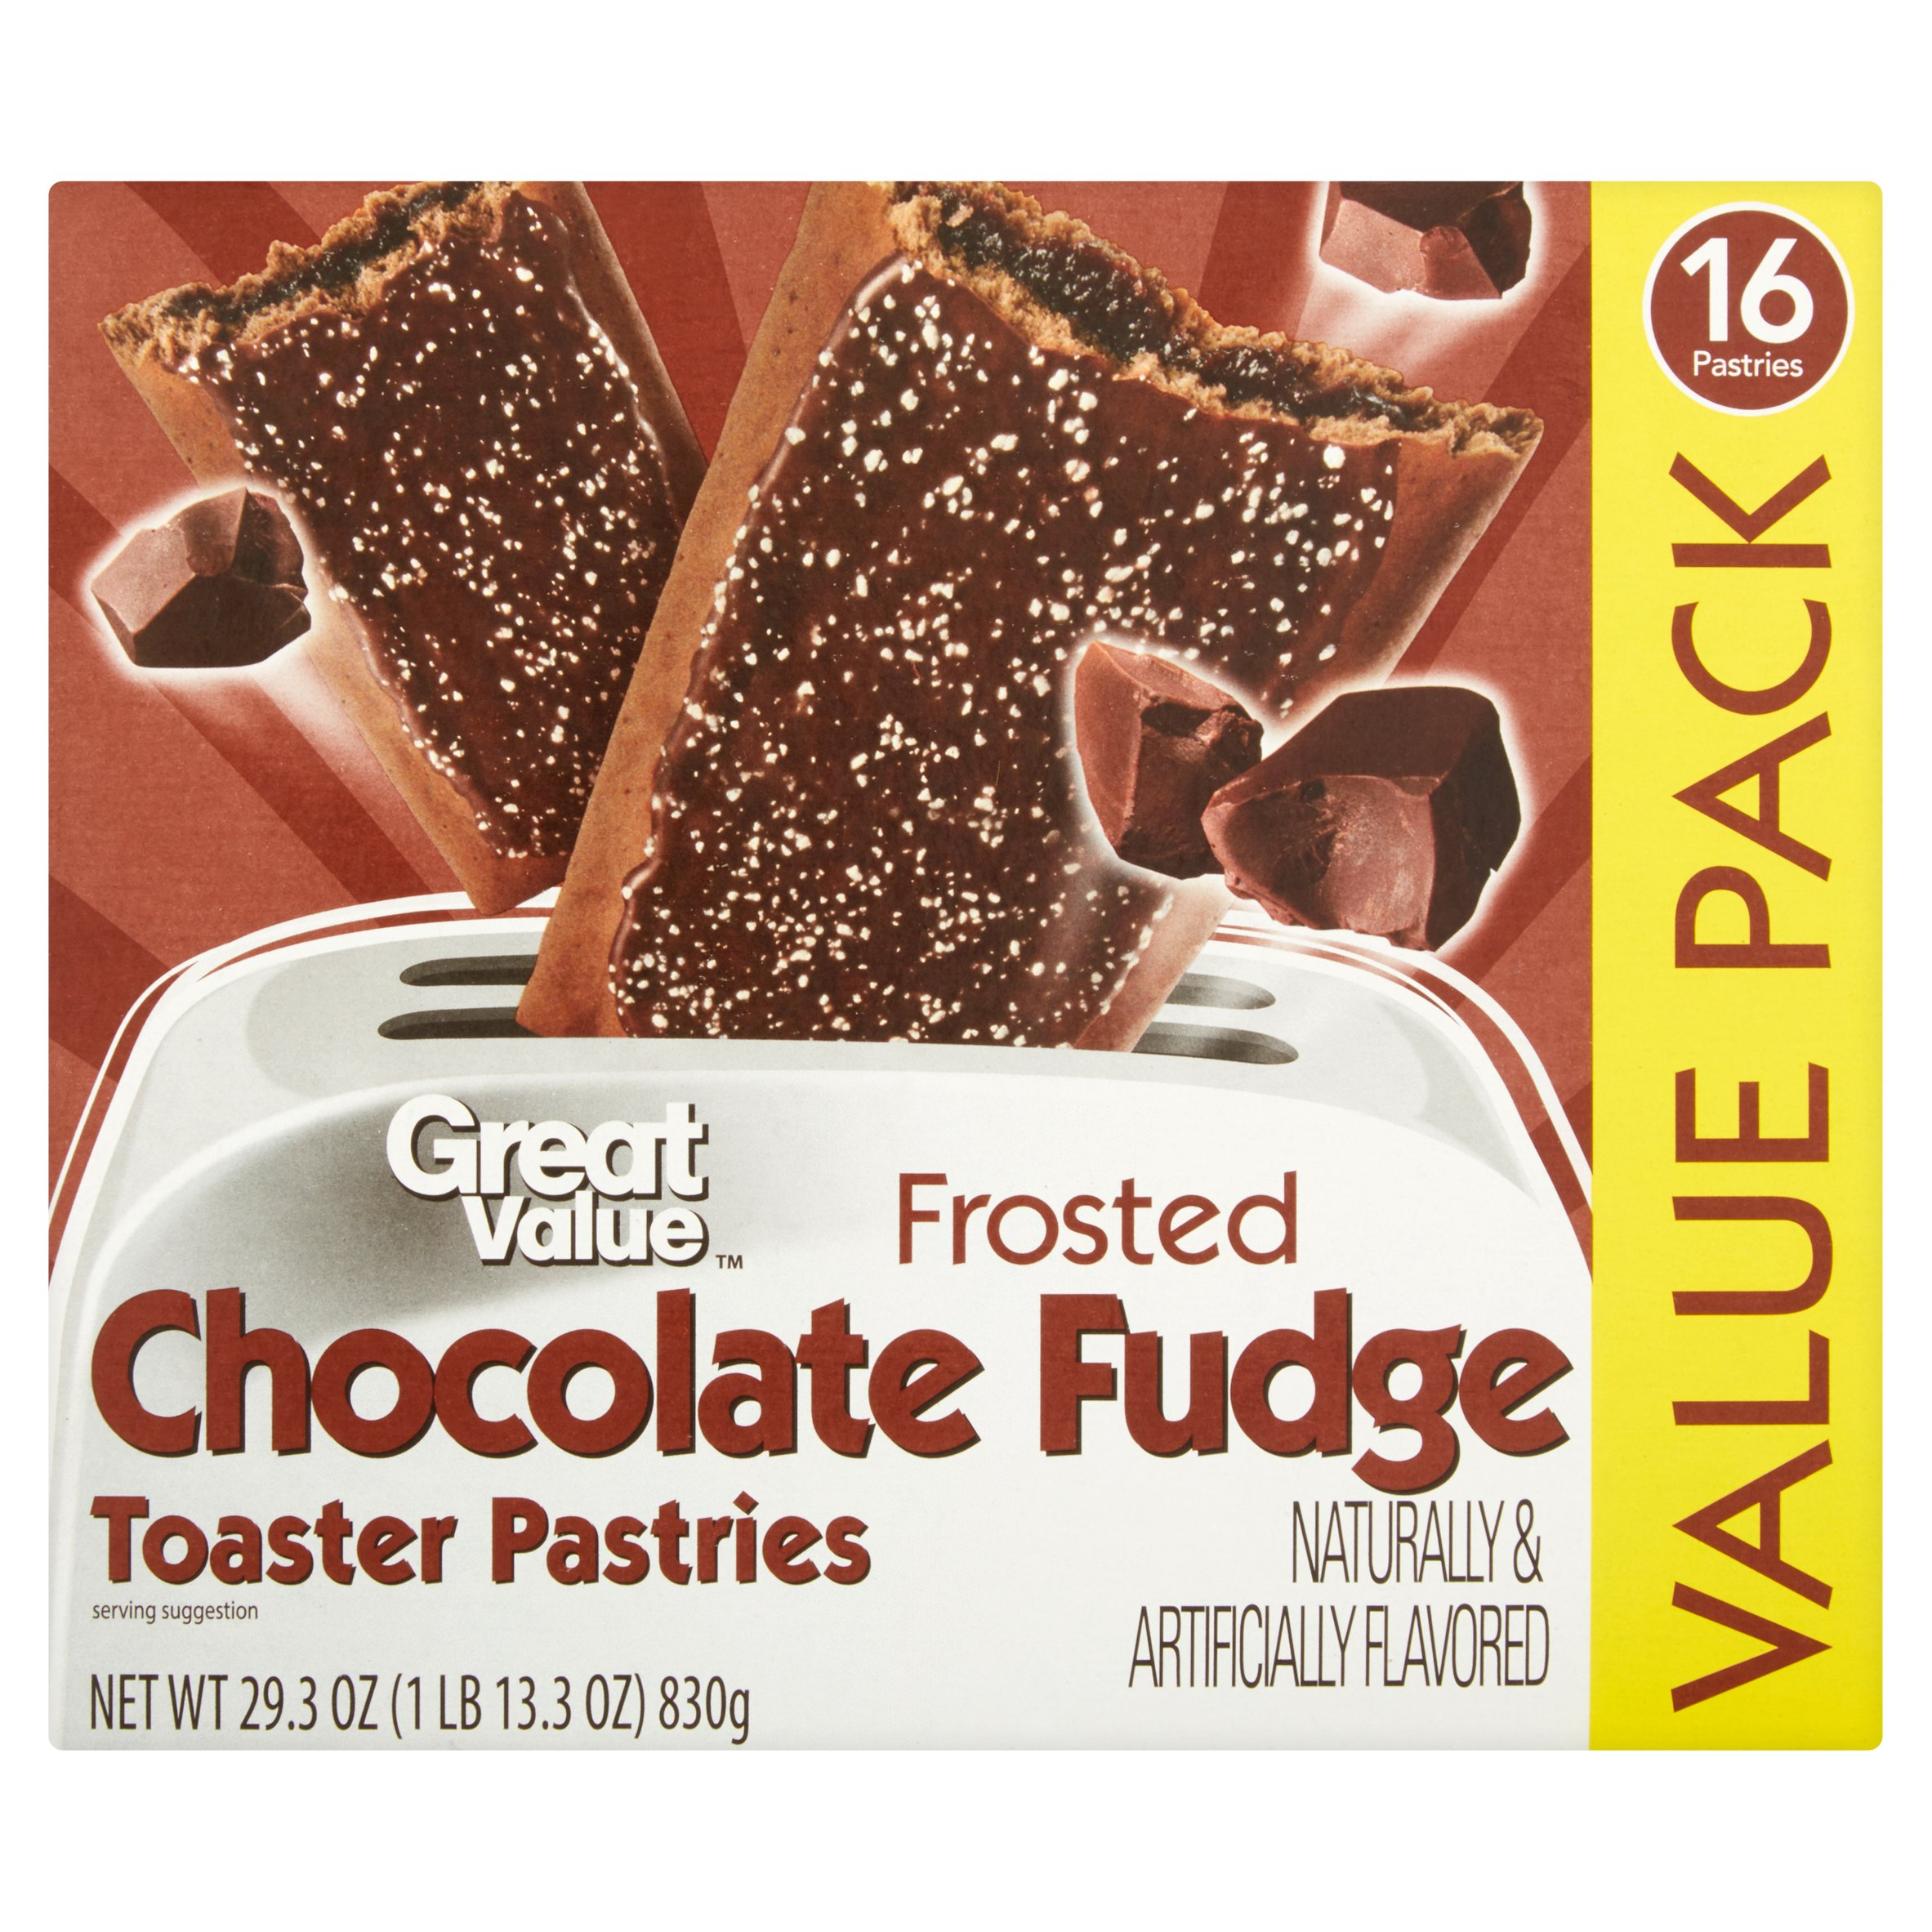 Great Value Frosted Chocolate Fudge Toaster Pastries, 16ct by Wal-Mart Stores, Inc.